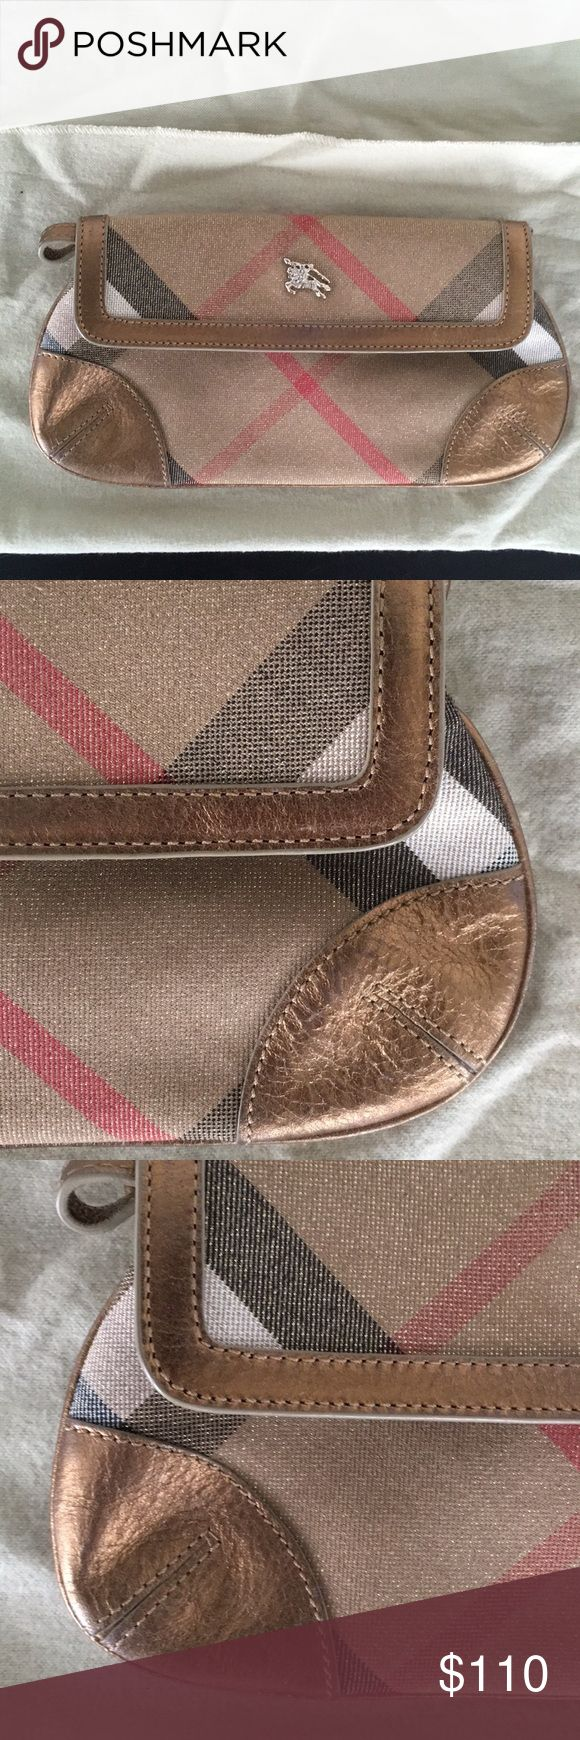 Burberry Clutch/wristlet Beautiful Burberry convertible clutch/wristlet with slight shimmer/metallic sheen. Minor wear on interior. Exterior is in excellent condition. Comes with original duster bag Burberry Bags Clutches & Wristlets